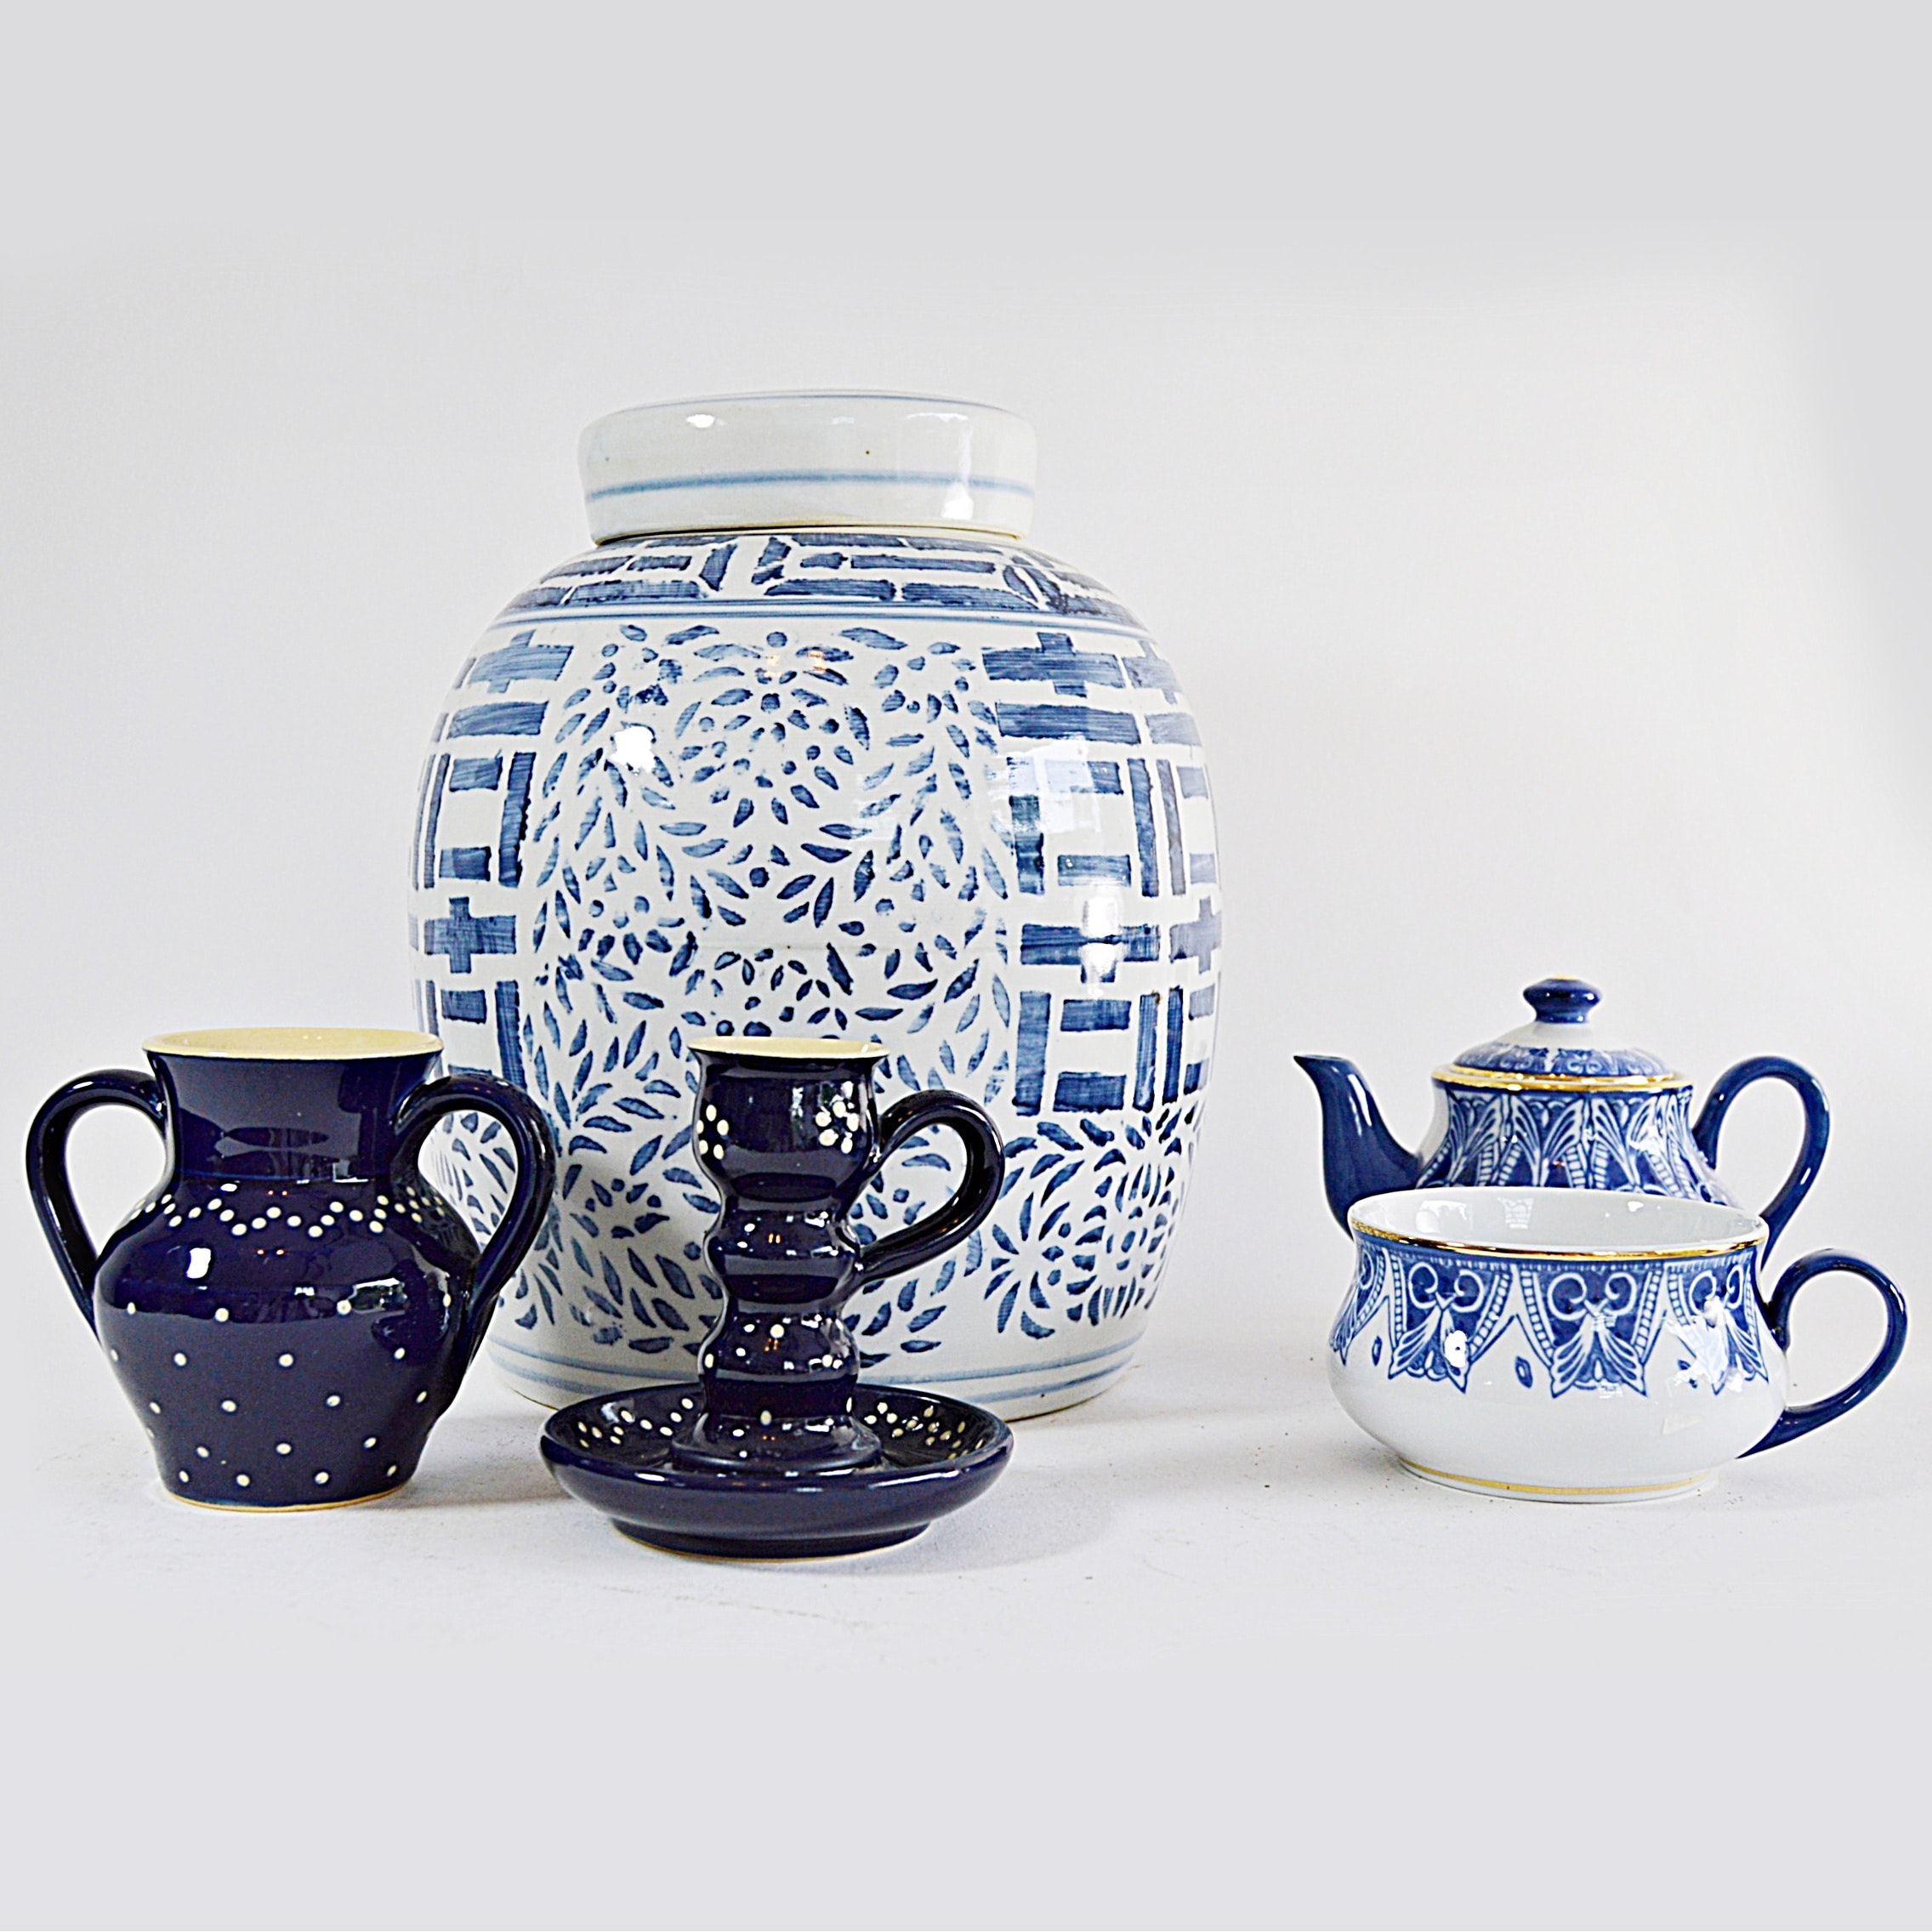 Blue and White German and Chinese Ceramics and Porcelain